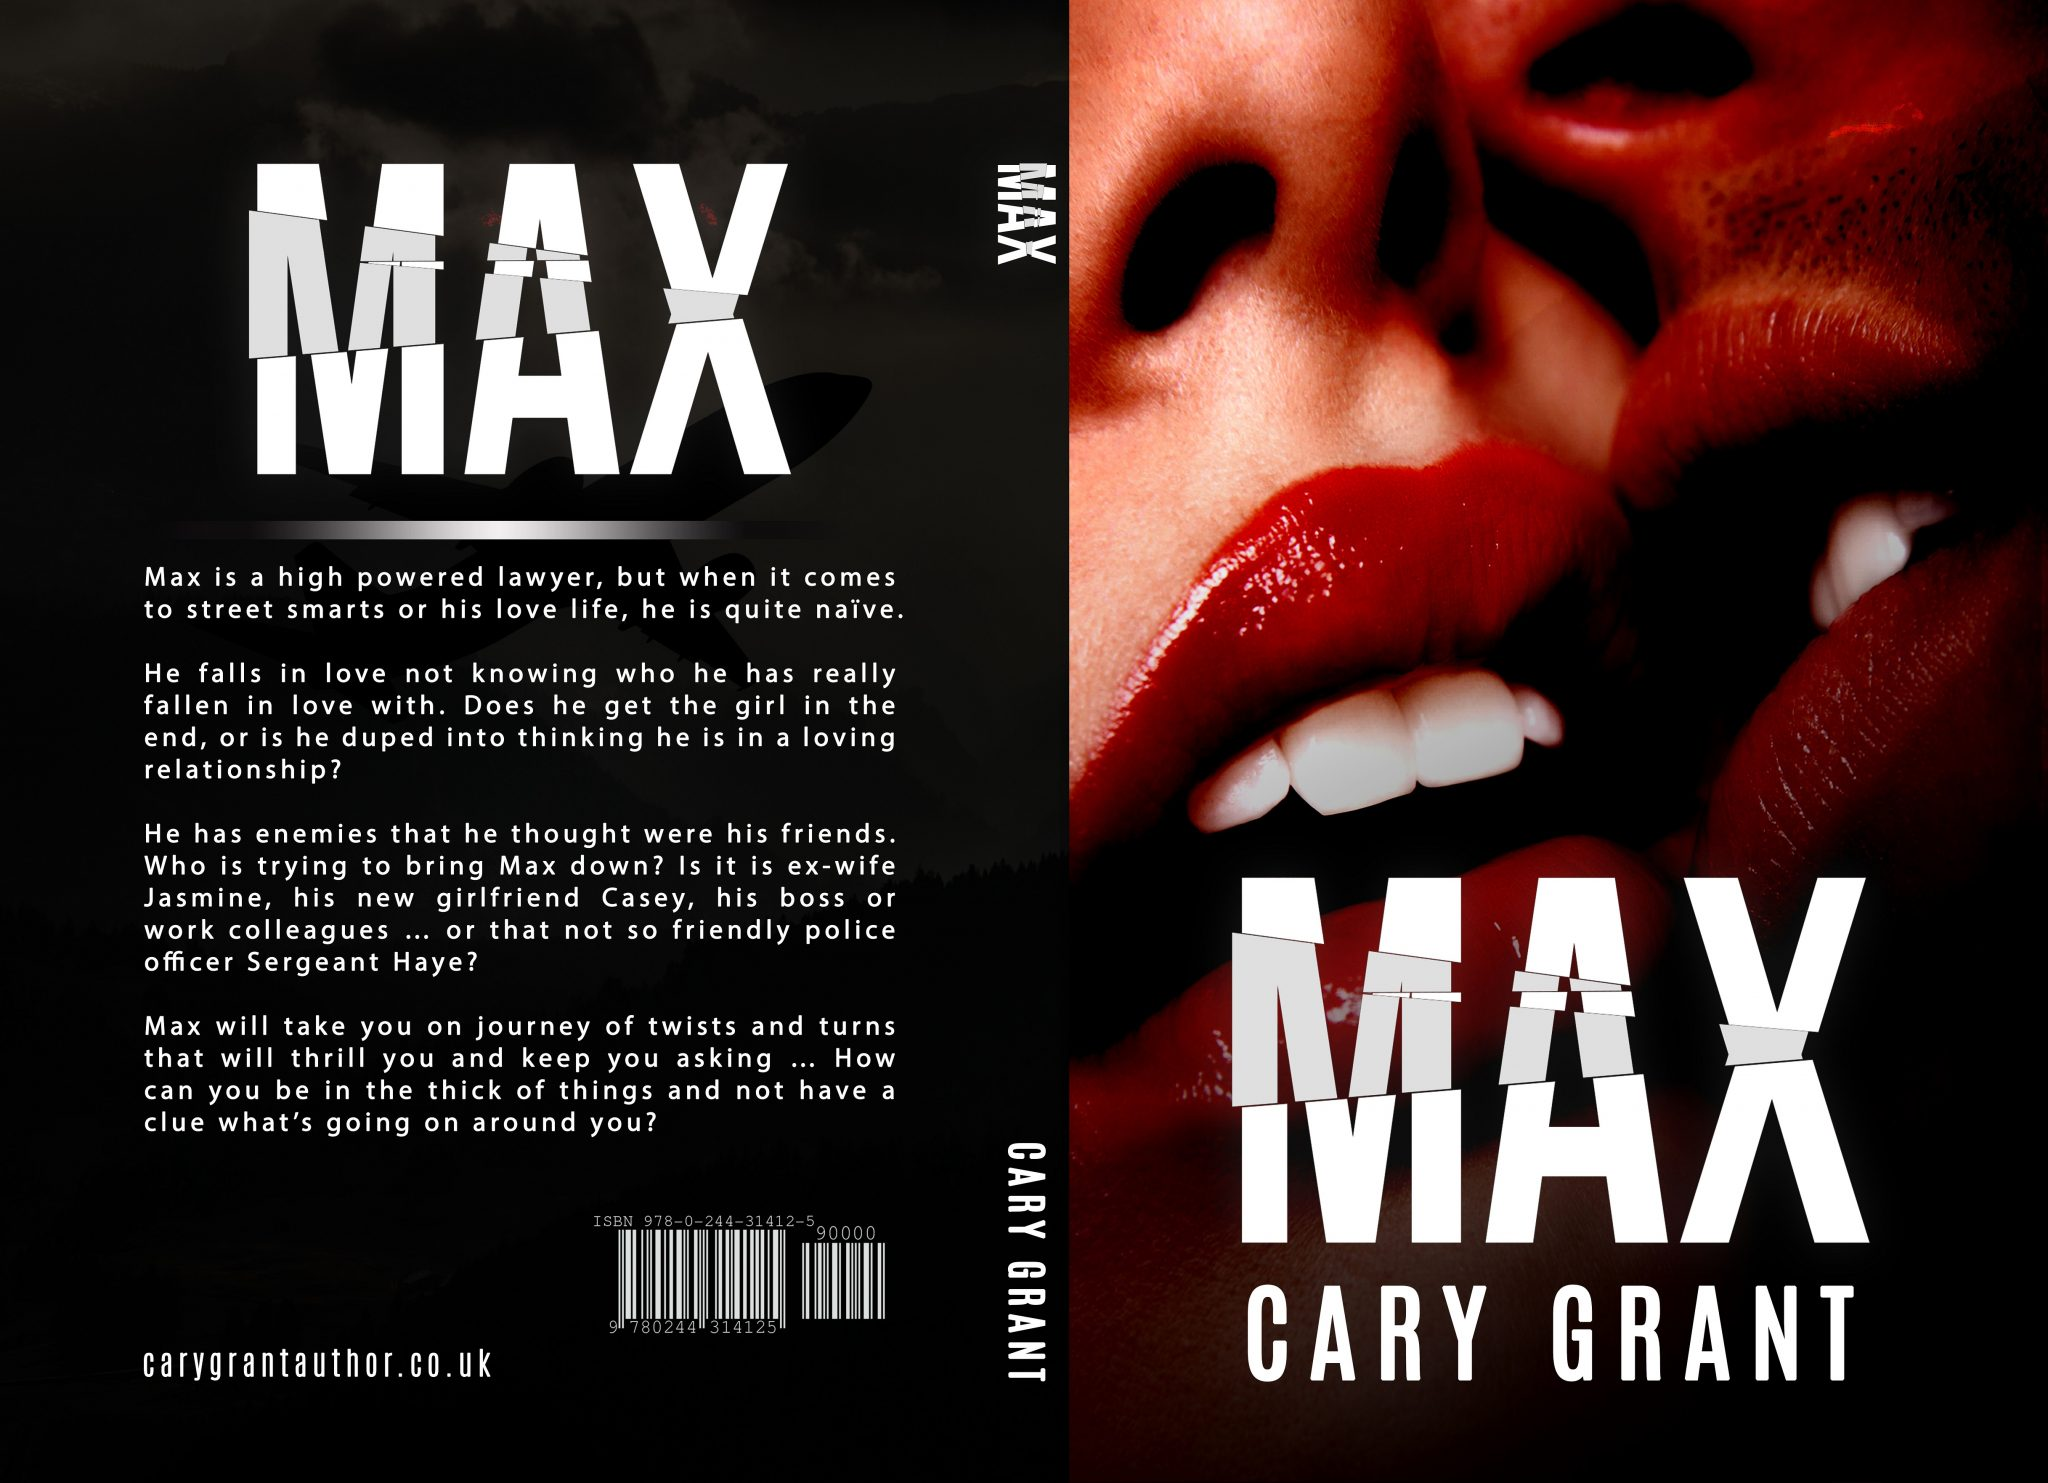 MAX - The latest novel by Cary Grant